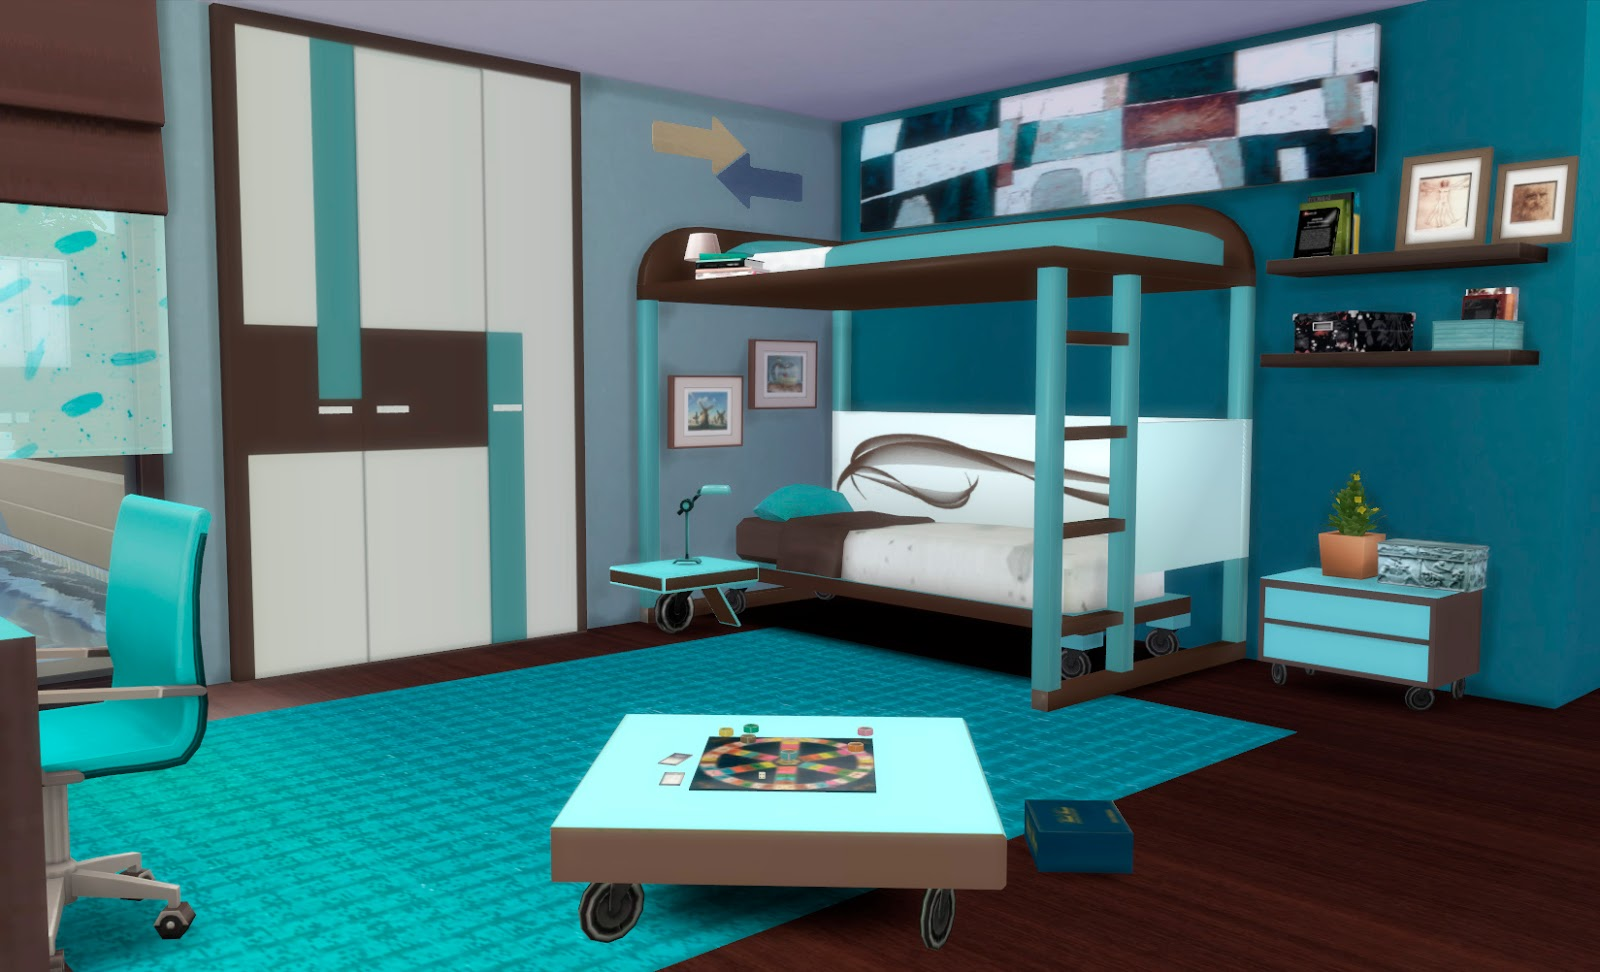 My sims 4 blog ivan bedroom set by pqsim4 for Muebles para los sims 3